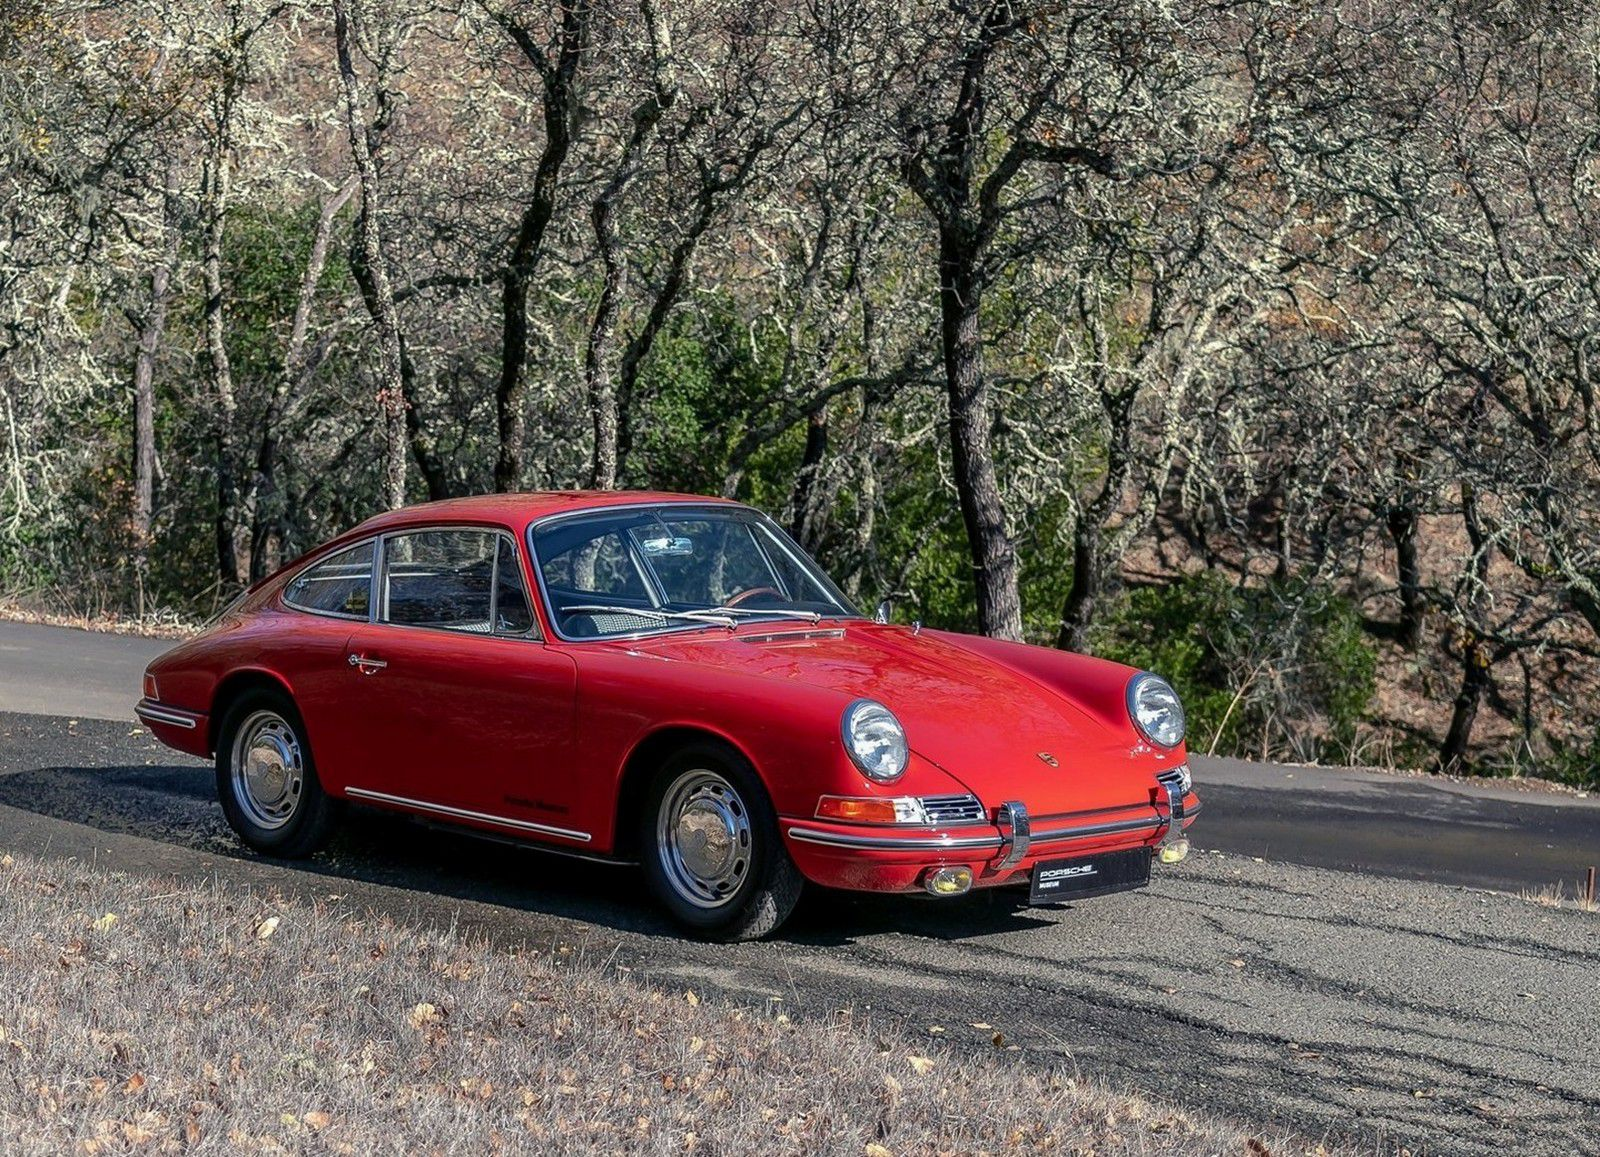 VOITURES DE LEGENDE (1190) : PORSCHE  901 - 1963